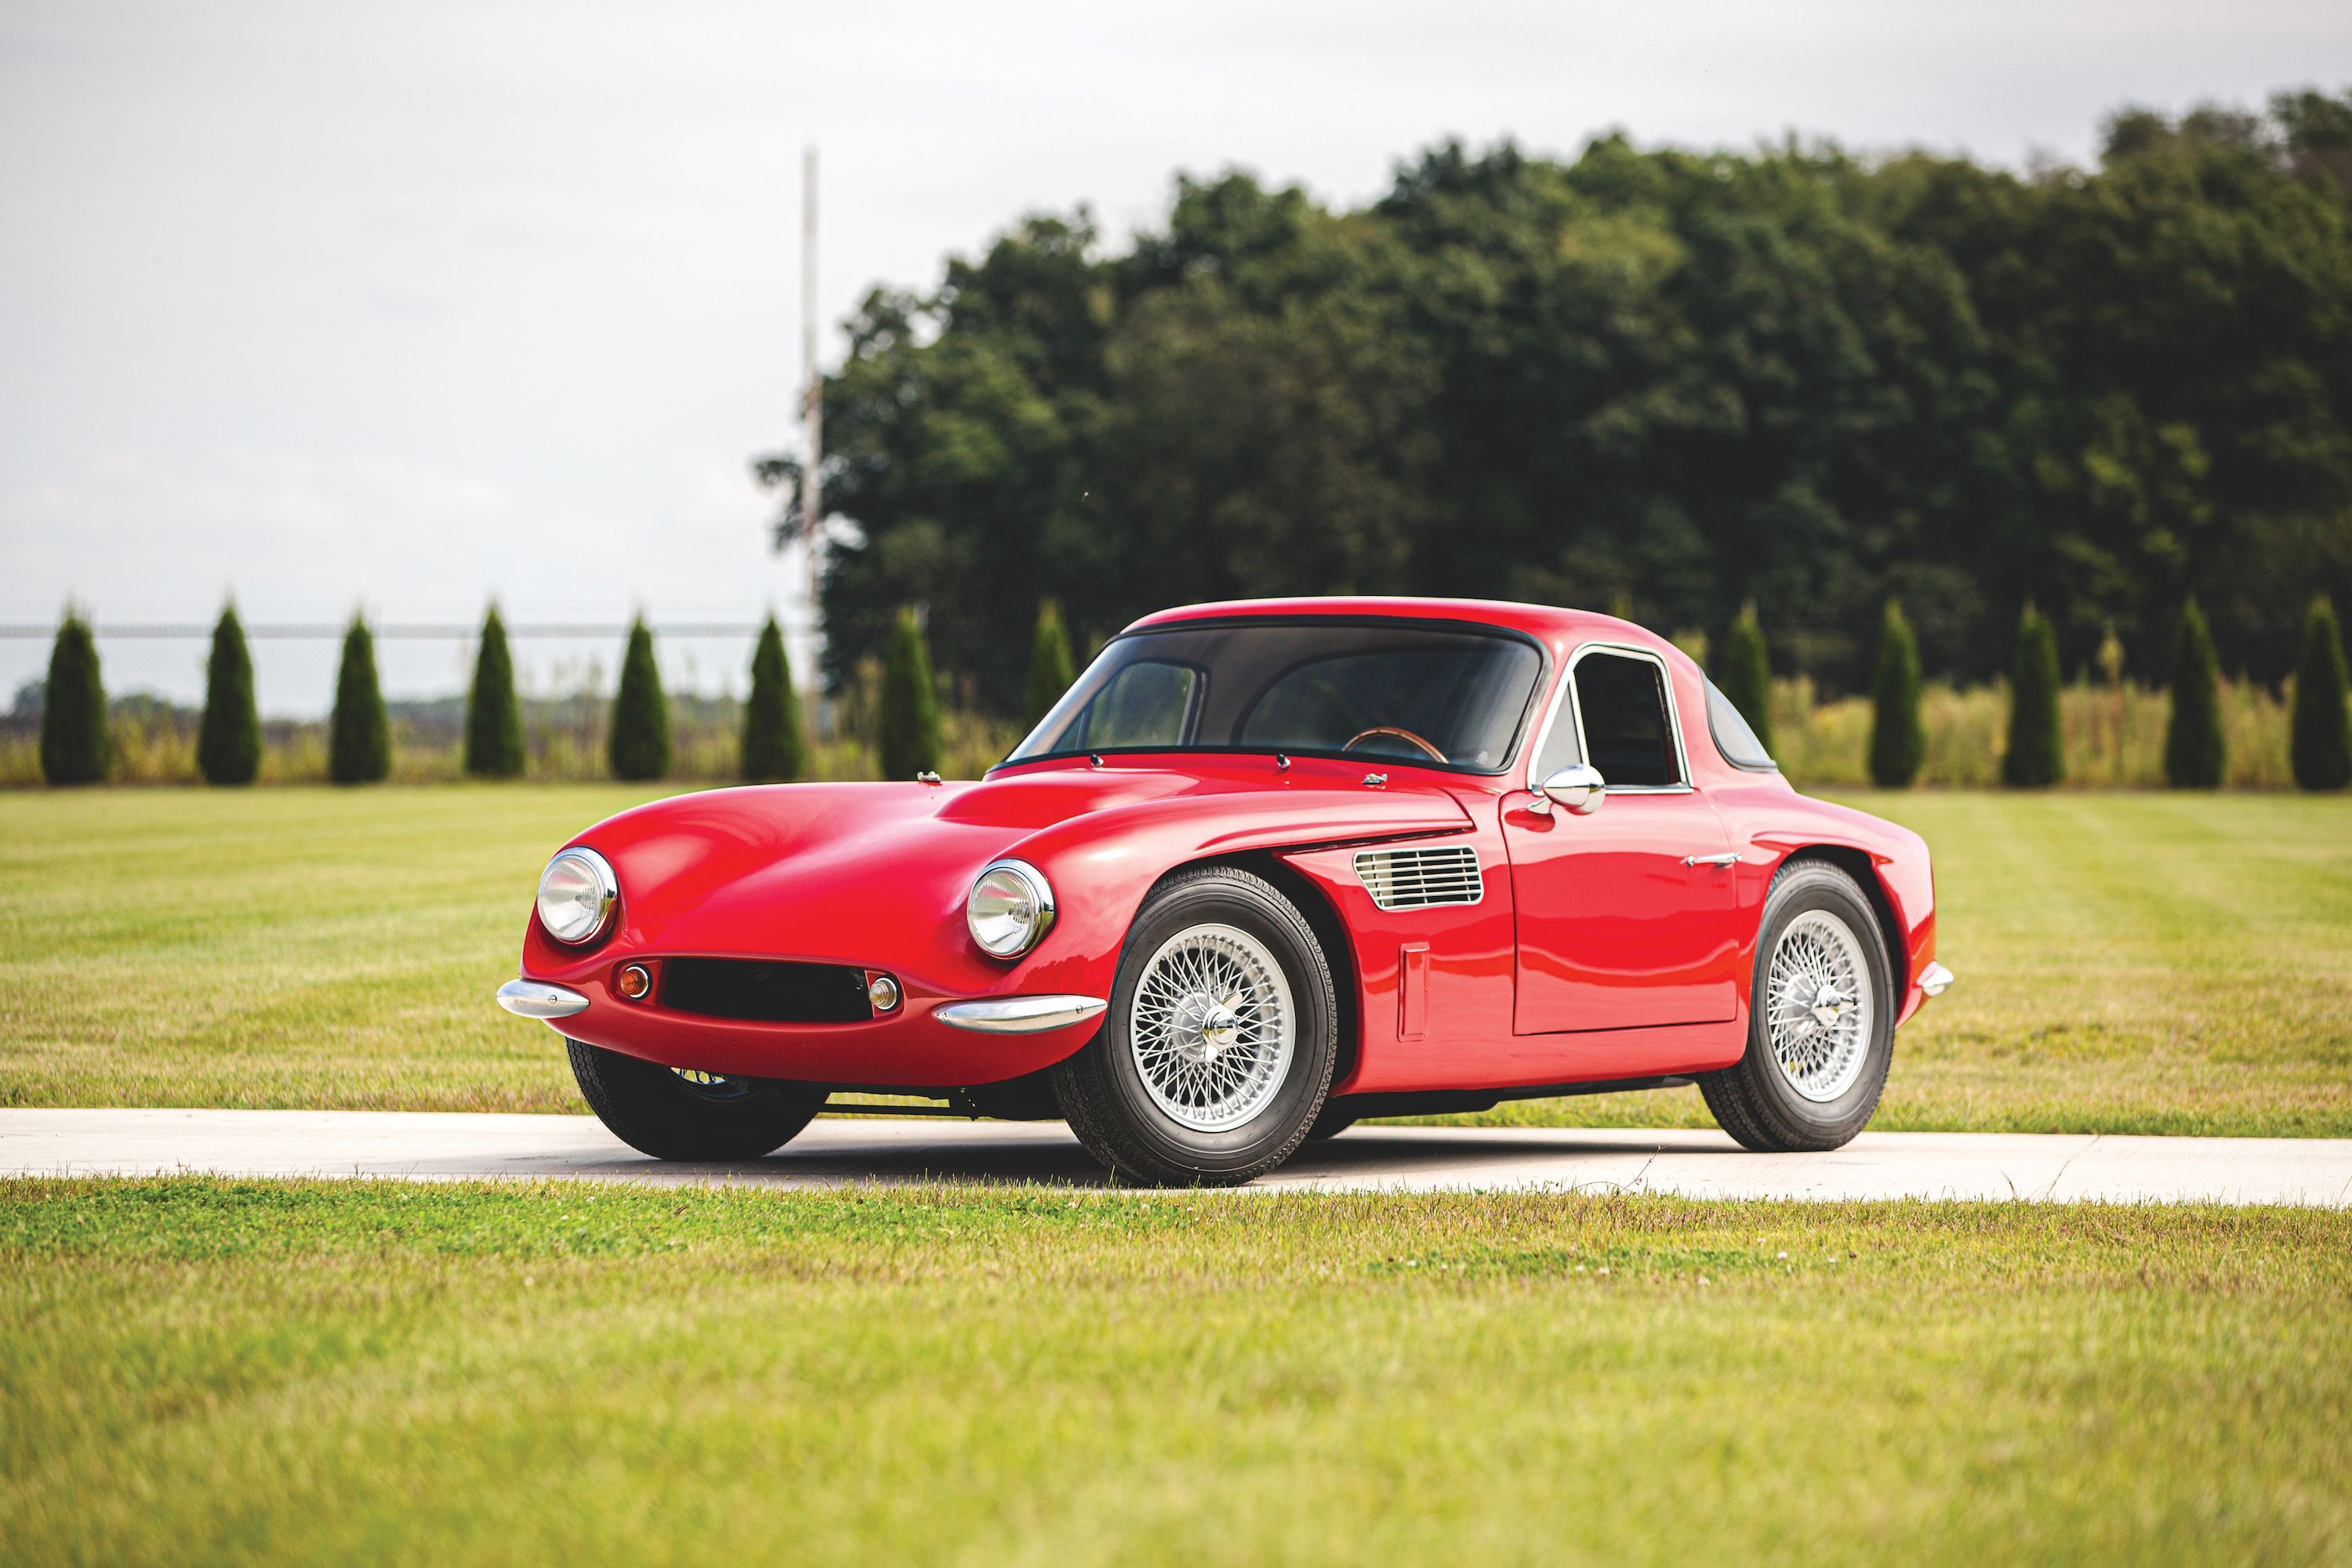 Let This One-Off TVR Griffith Prototype Brighten Your Collection